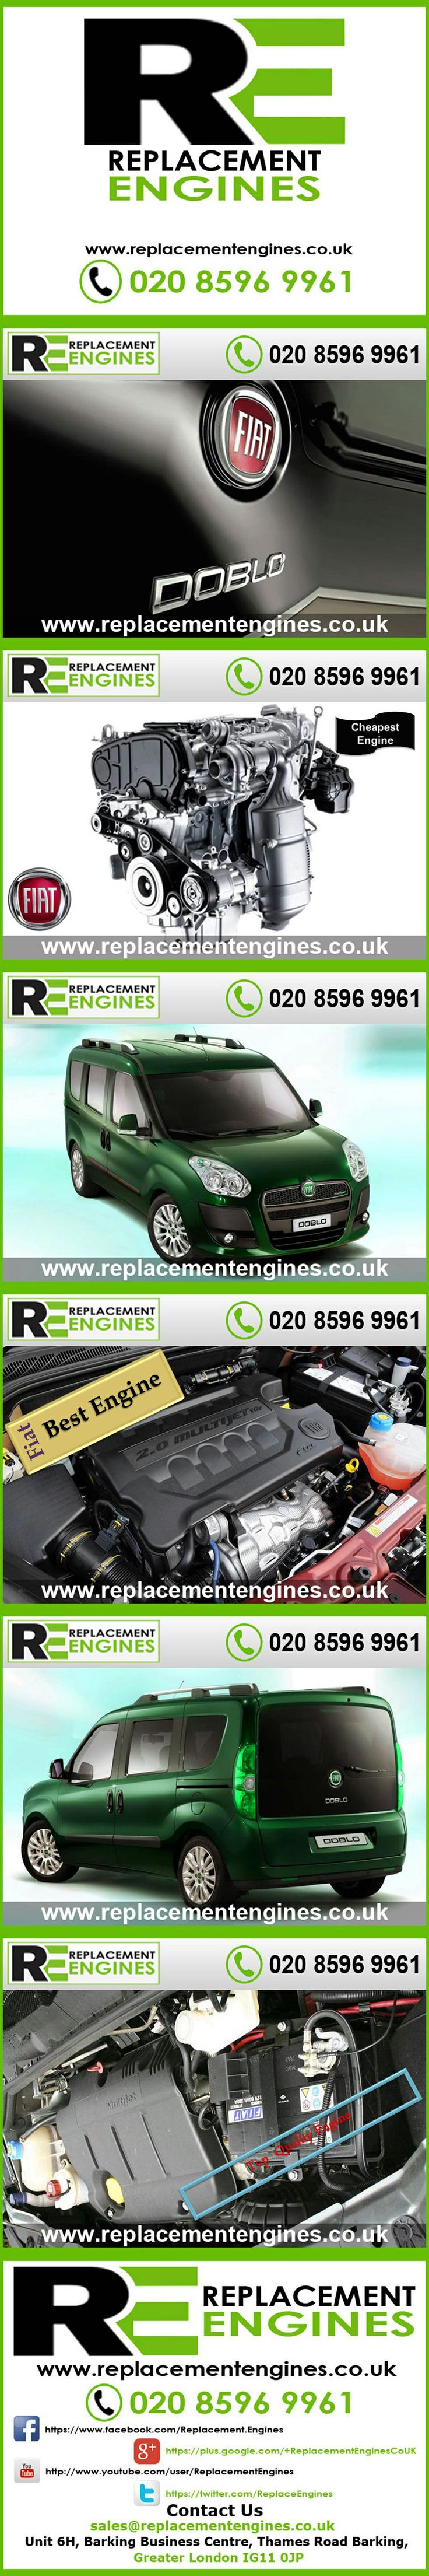 Fiat Doblo Engines for sale at the cheapest prices, we have low mileage used & reconditioned engines in stock now, ready to be delivered to anywhere in the UK or overseas, visit Replacement Engines website here.  http://www.replacementengines.co.uk/car-md.asp?part=all-fiat-doblo-engine&mo_id=1001